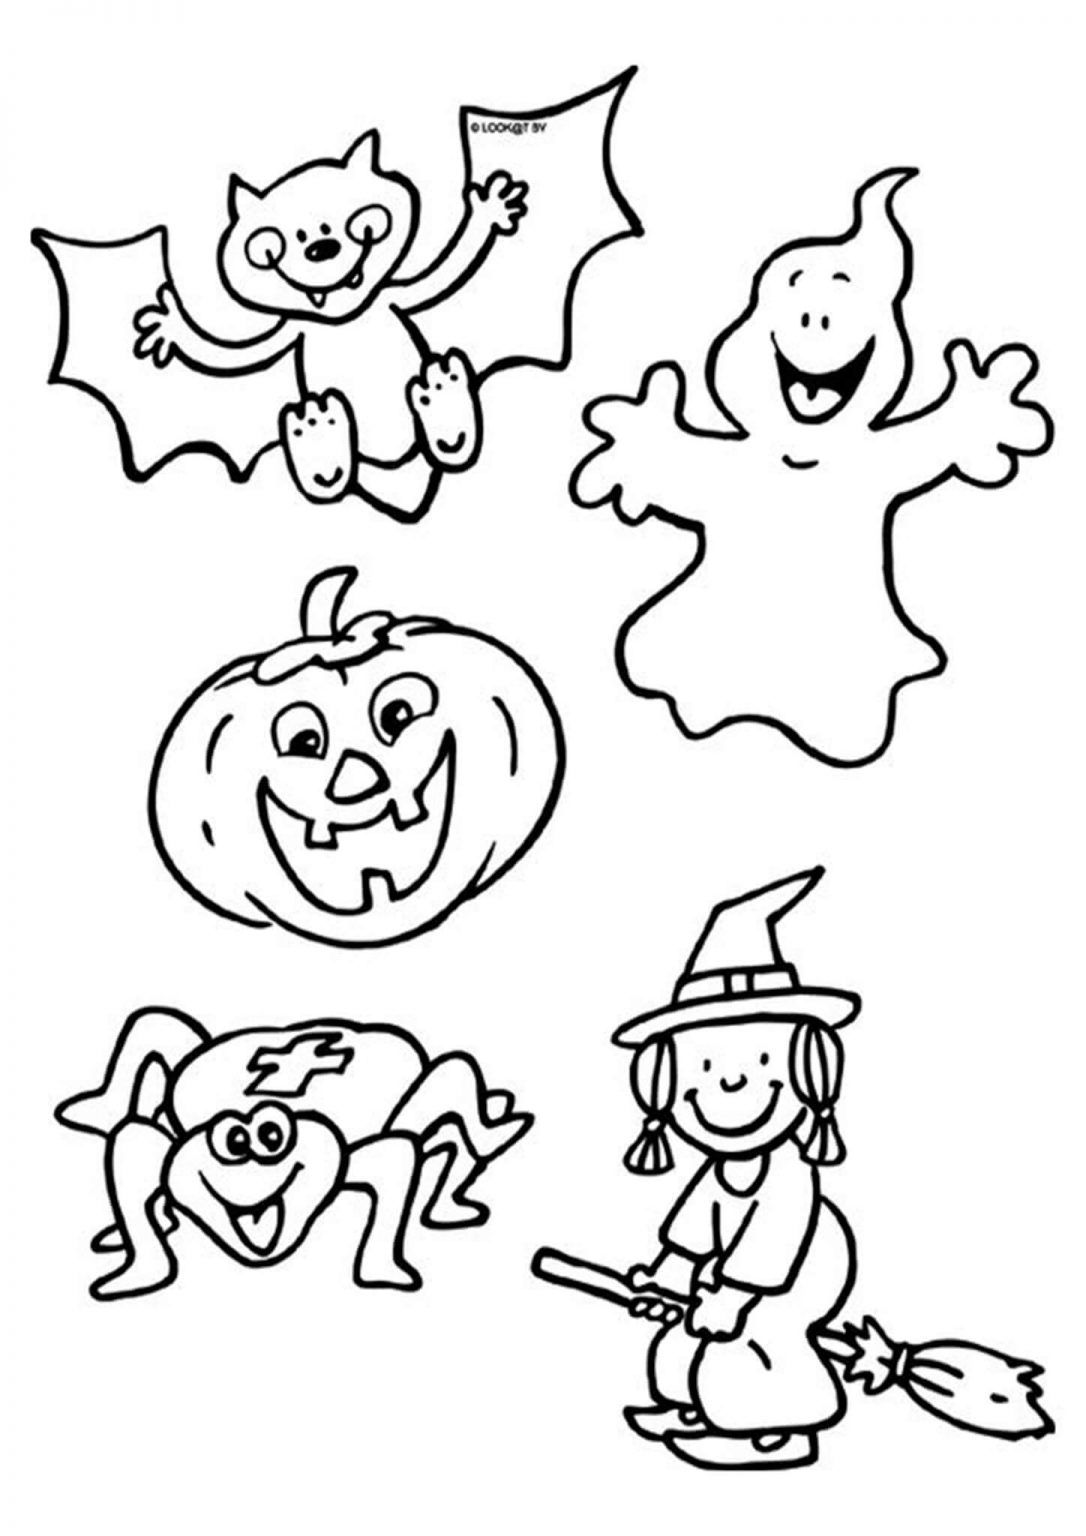 Free Easy To Print Halloween Coloring Pages Halloween Coloring Free Halloween Coloring Pages Coloring Pages